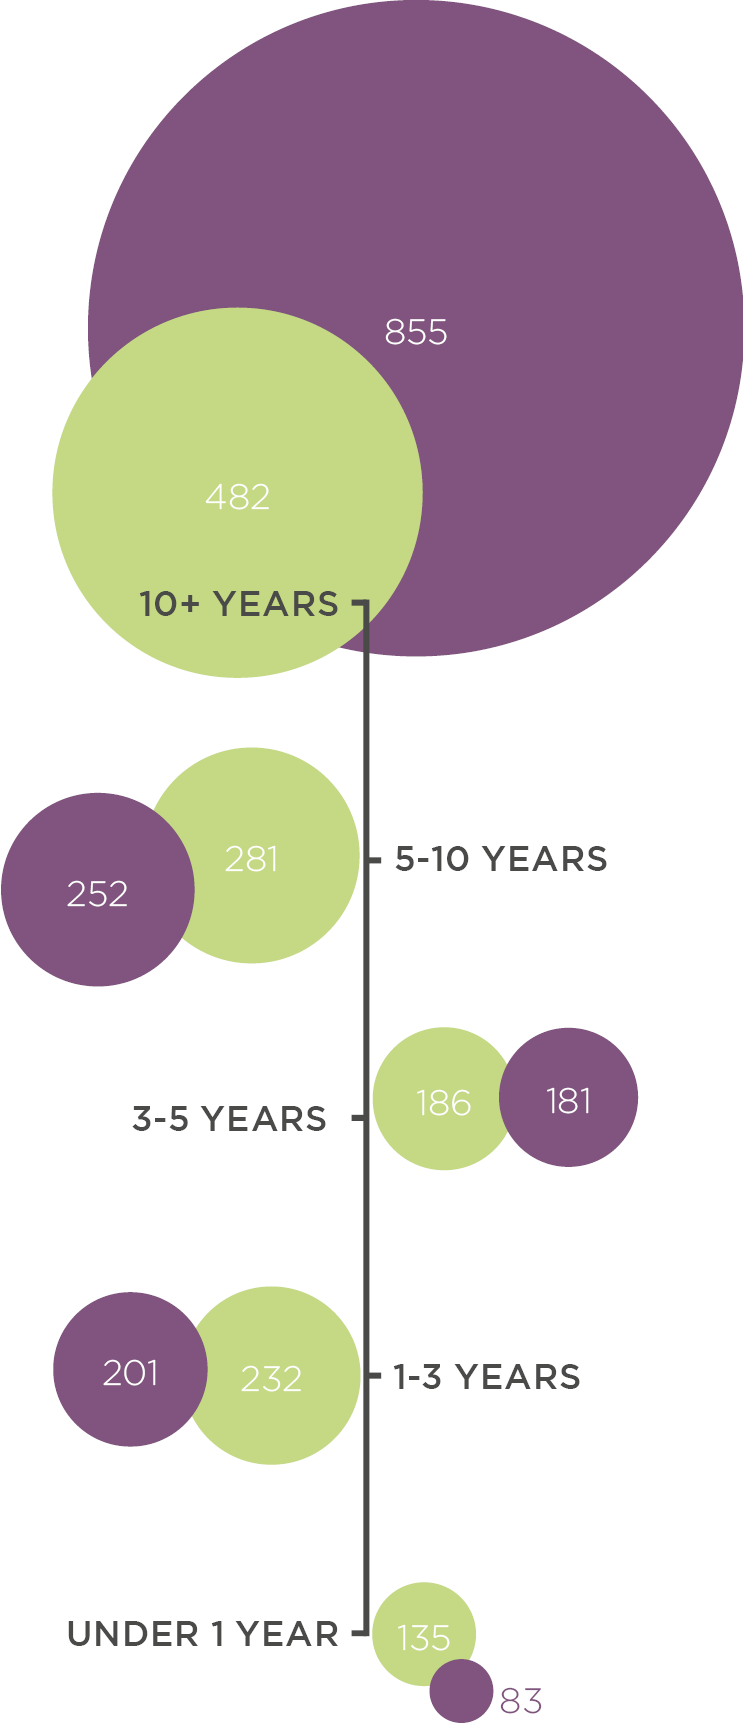 Gender and Time in the Industry